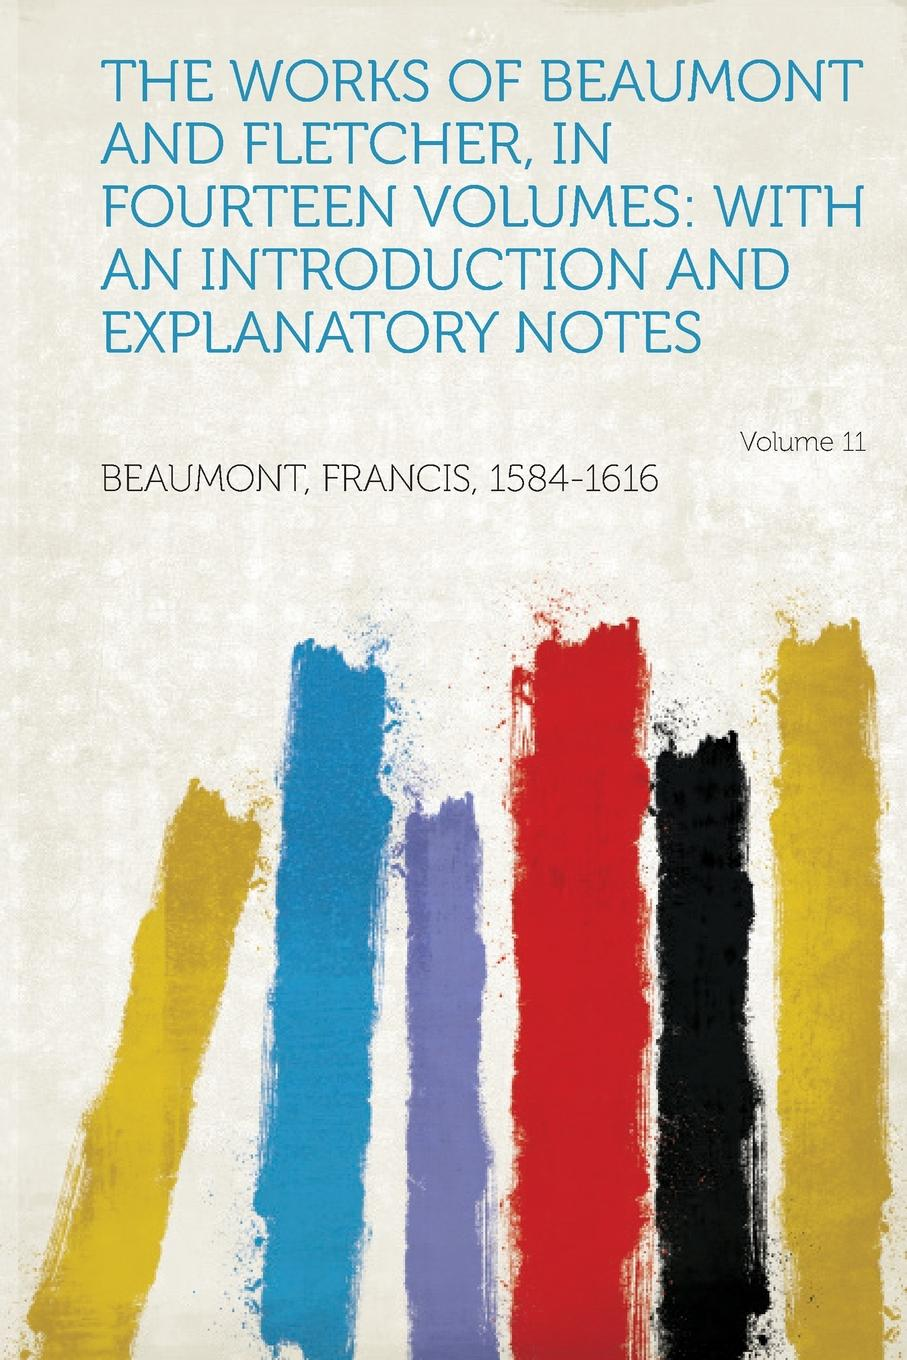 Francis Beaumont The Works of Beaumont and Fletcher, in Fourteen Volumes. With an Introduction and Explanatory Notes Volume 11 francis beaumont the works of beaumont and fletcher in fourteen volumes with an introduction and explanatory notes volume 2